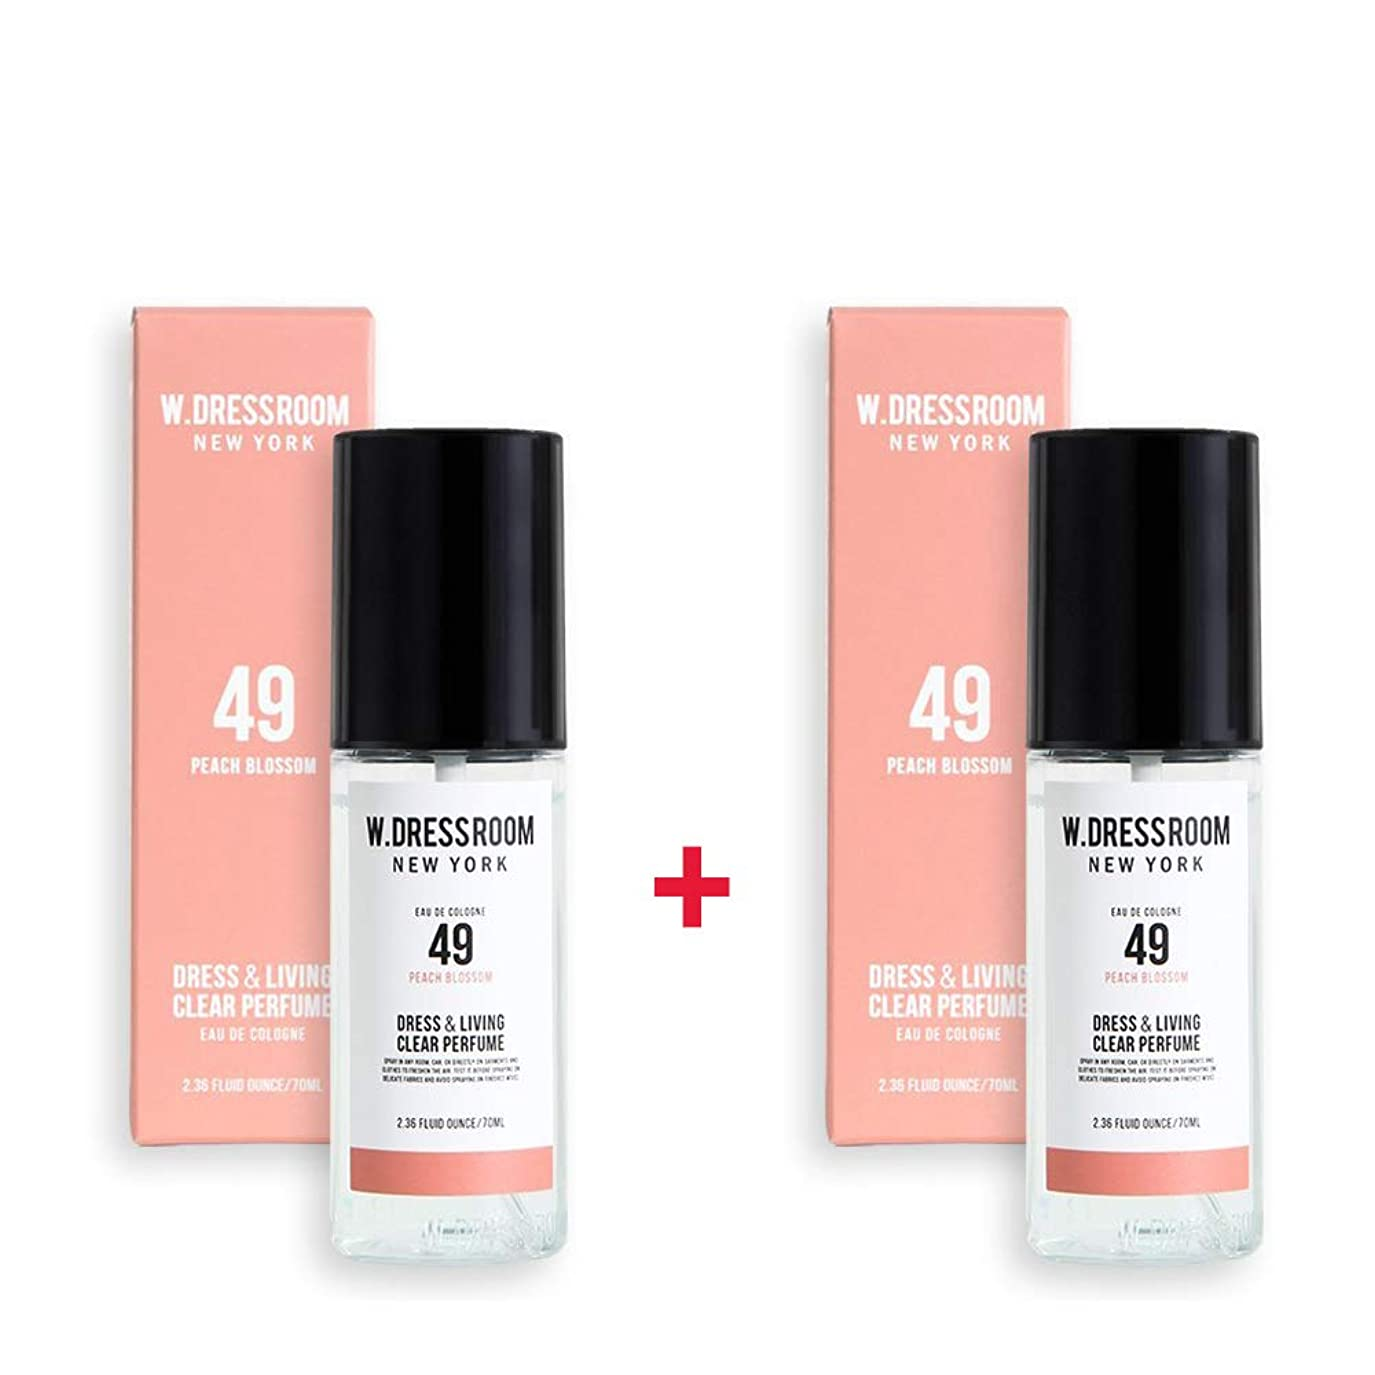 予見するペルメルペインW.DRESSROOM Dress & Living Clear Perfume 70ml (No 49 Peach Blossom)+(No 49 Peach Blossom)